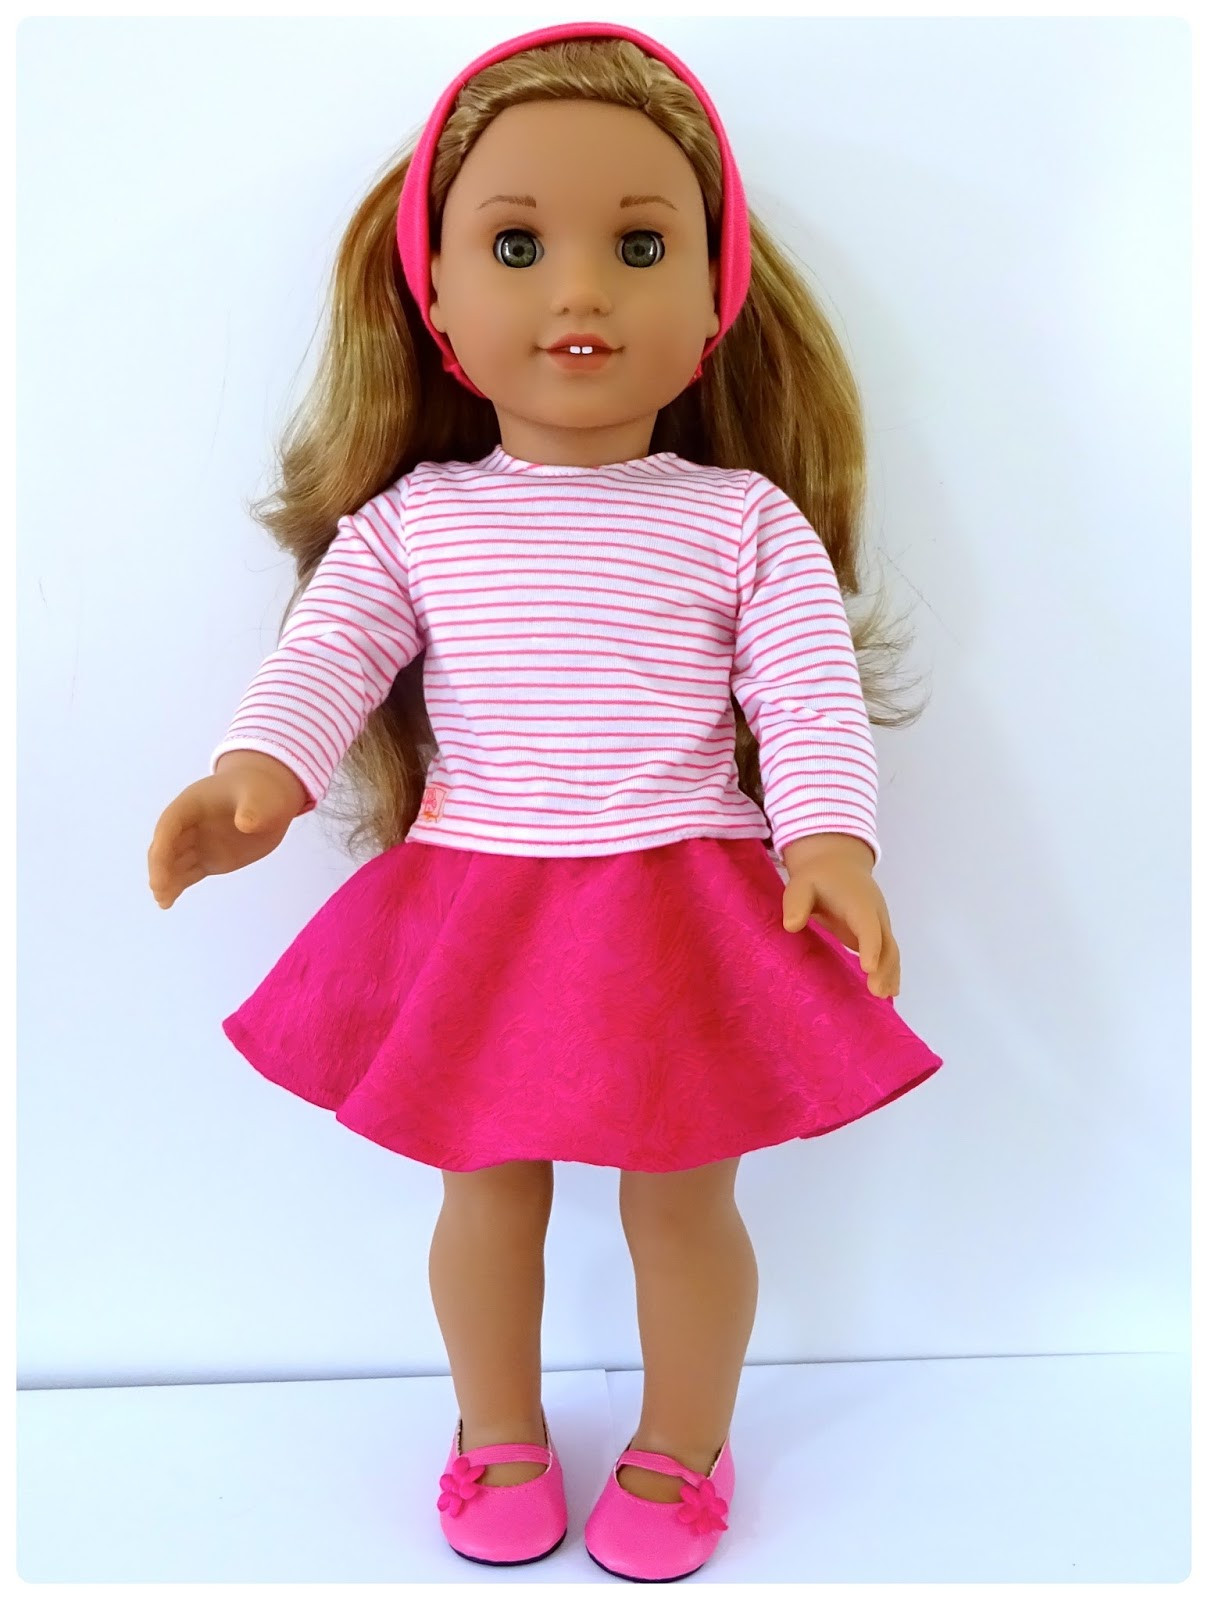 Luxury Doll Clothes Patterns by Valspierssews Skater Skirt Doll Free American Girl Doll Clothes Patterns Of Lovely 49 Models Free American Girl Doll Clothes Patterns